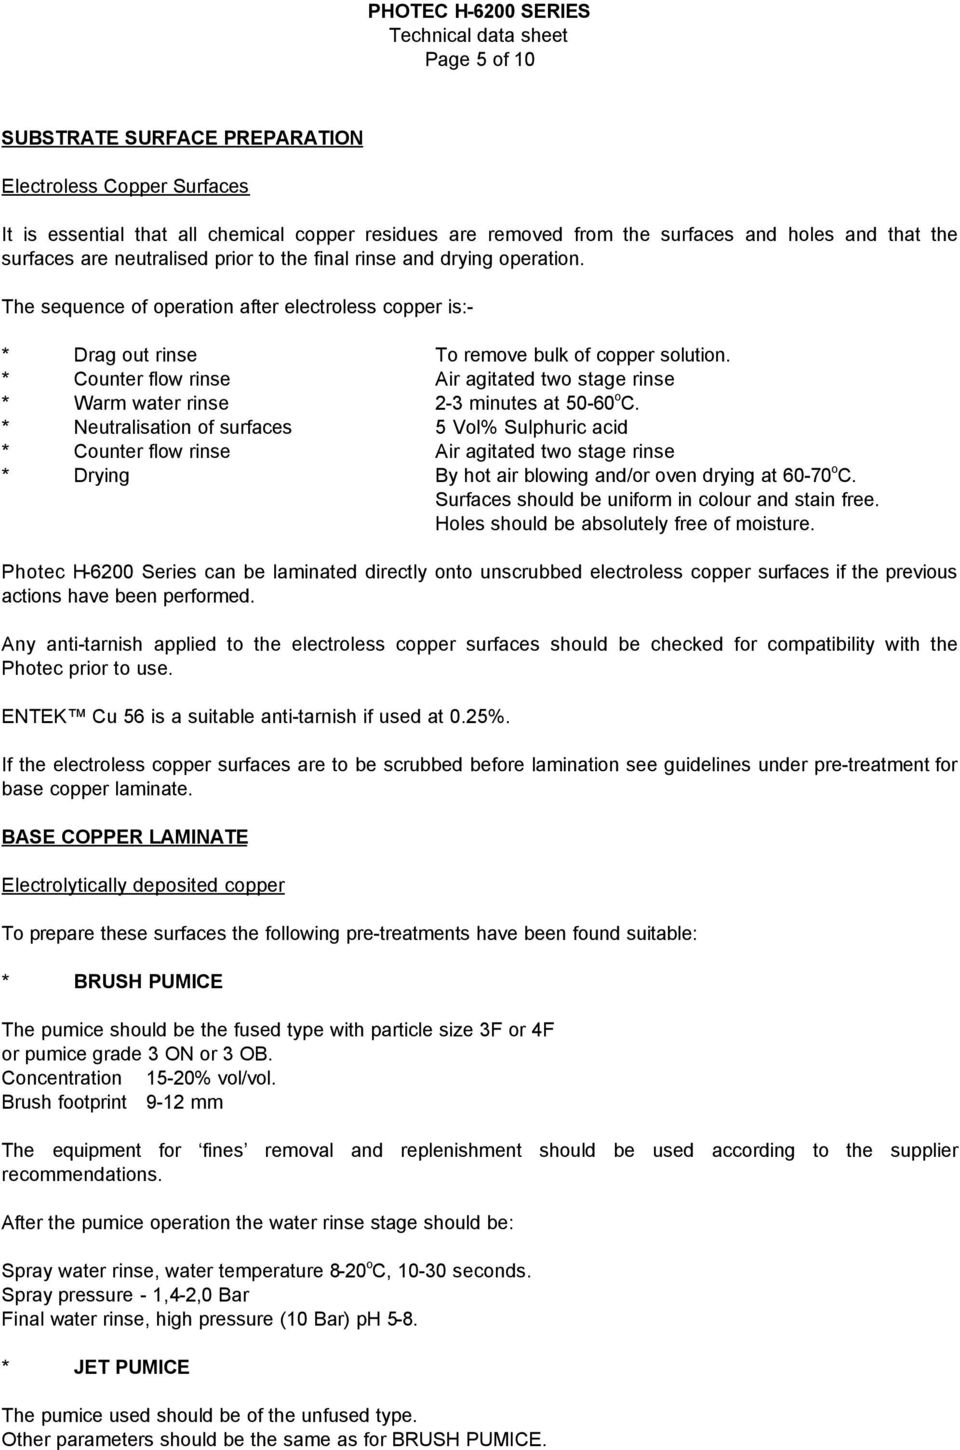 Photec H 6200 Series Technical Data Sheet Page 2 Of 10 Pdf Enthone Printed Circuit Board Fabrication Counter Flow Rinse Air Agitated Two Stage Warm Water 3